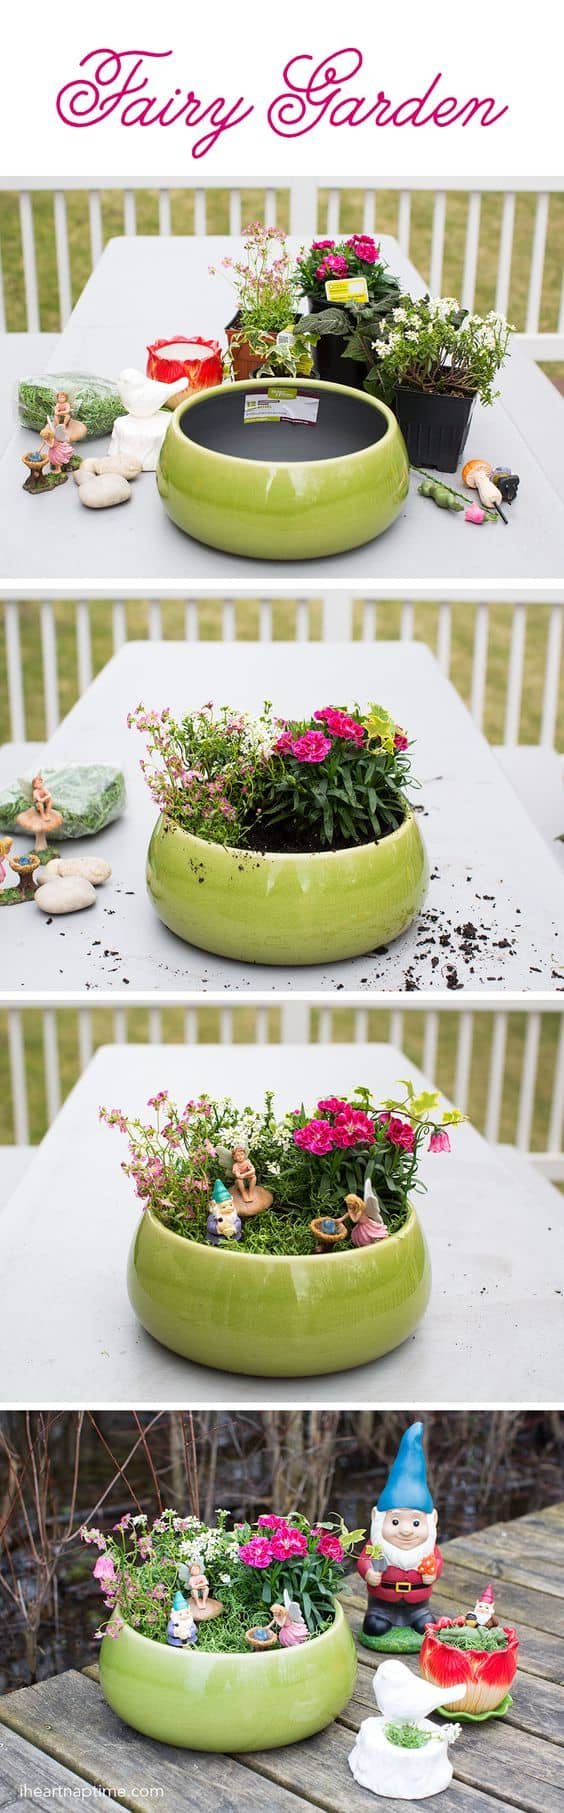 16 Do-It-Yourself Fairy Garden Ideas For Kids (7)